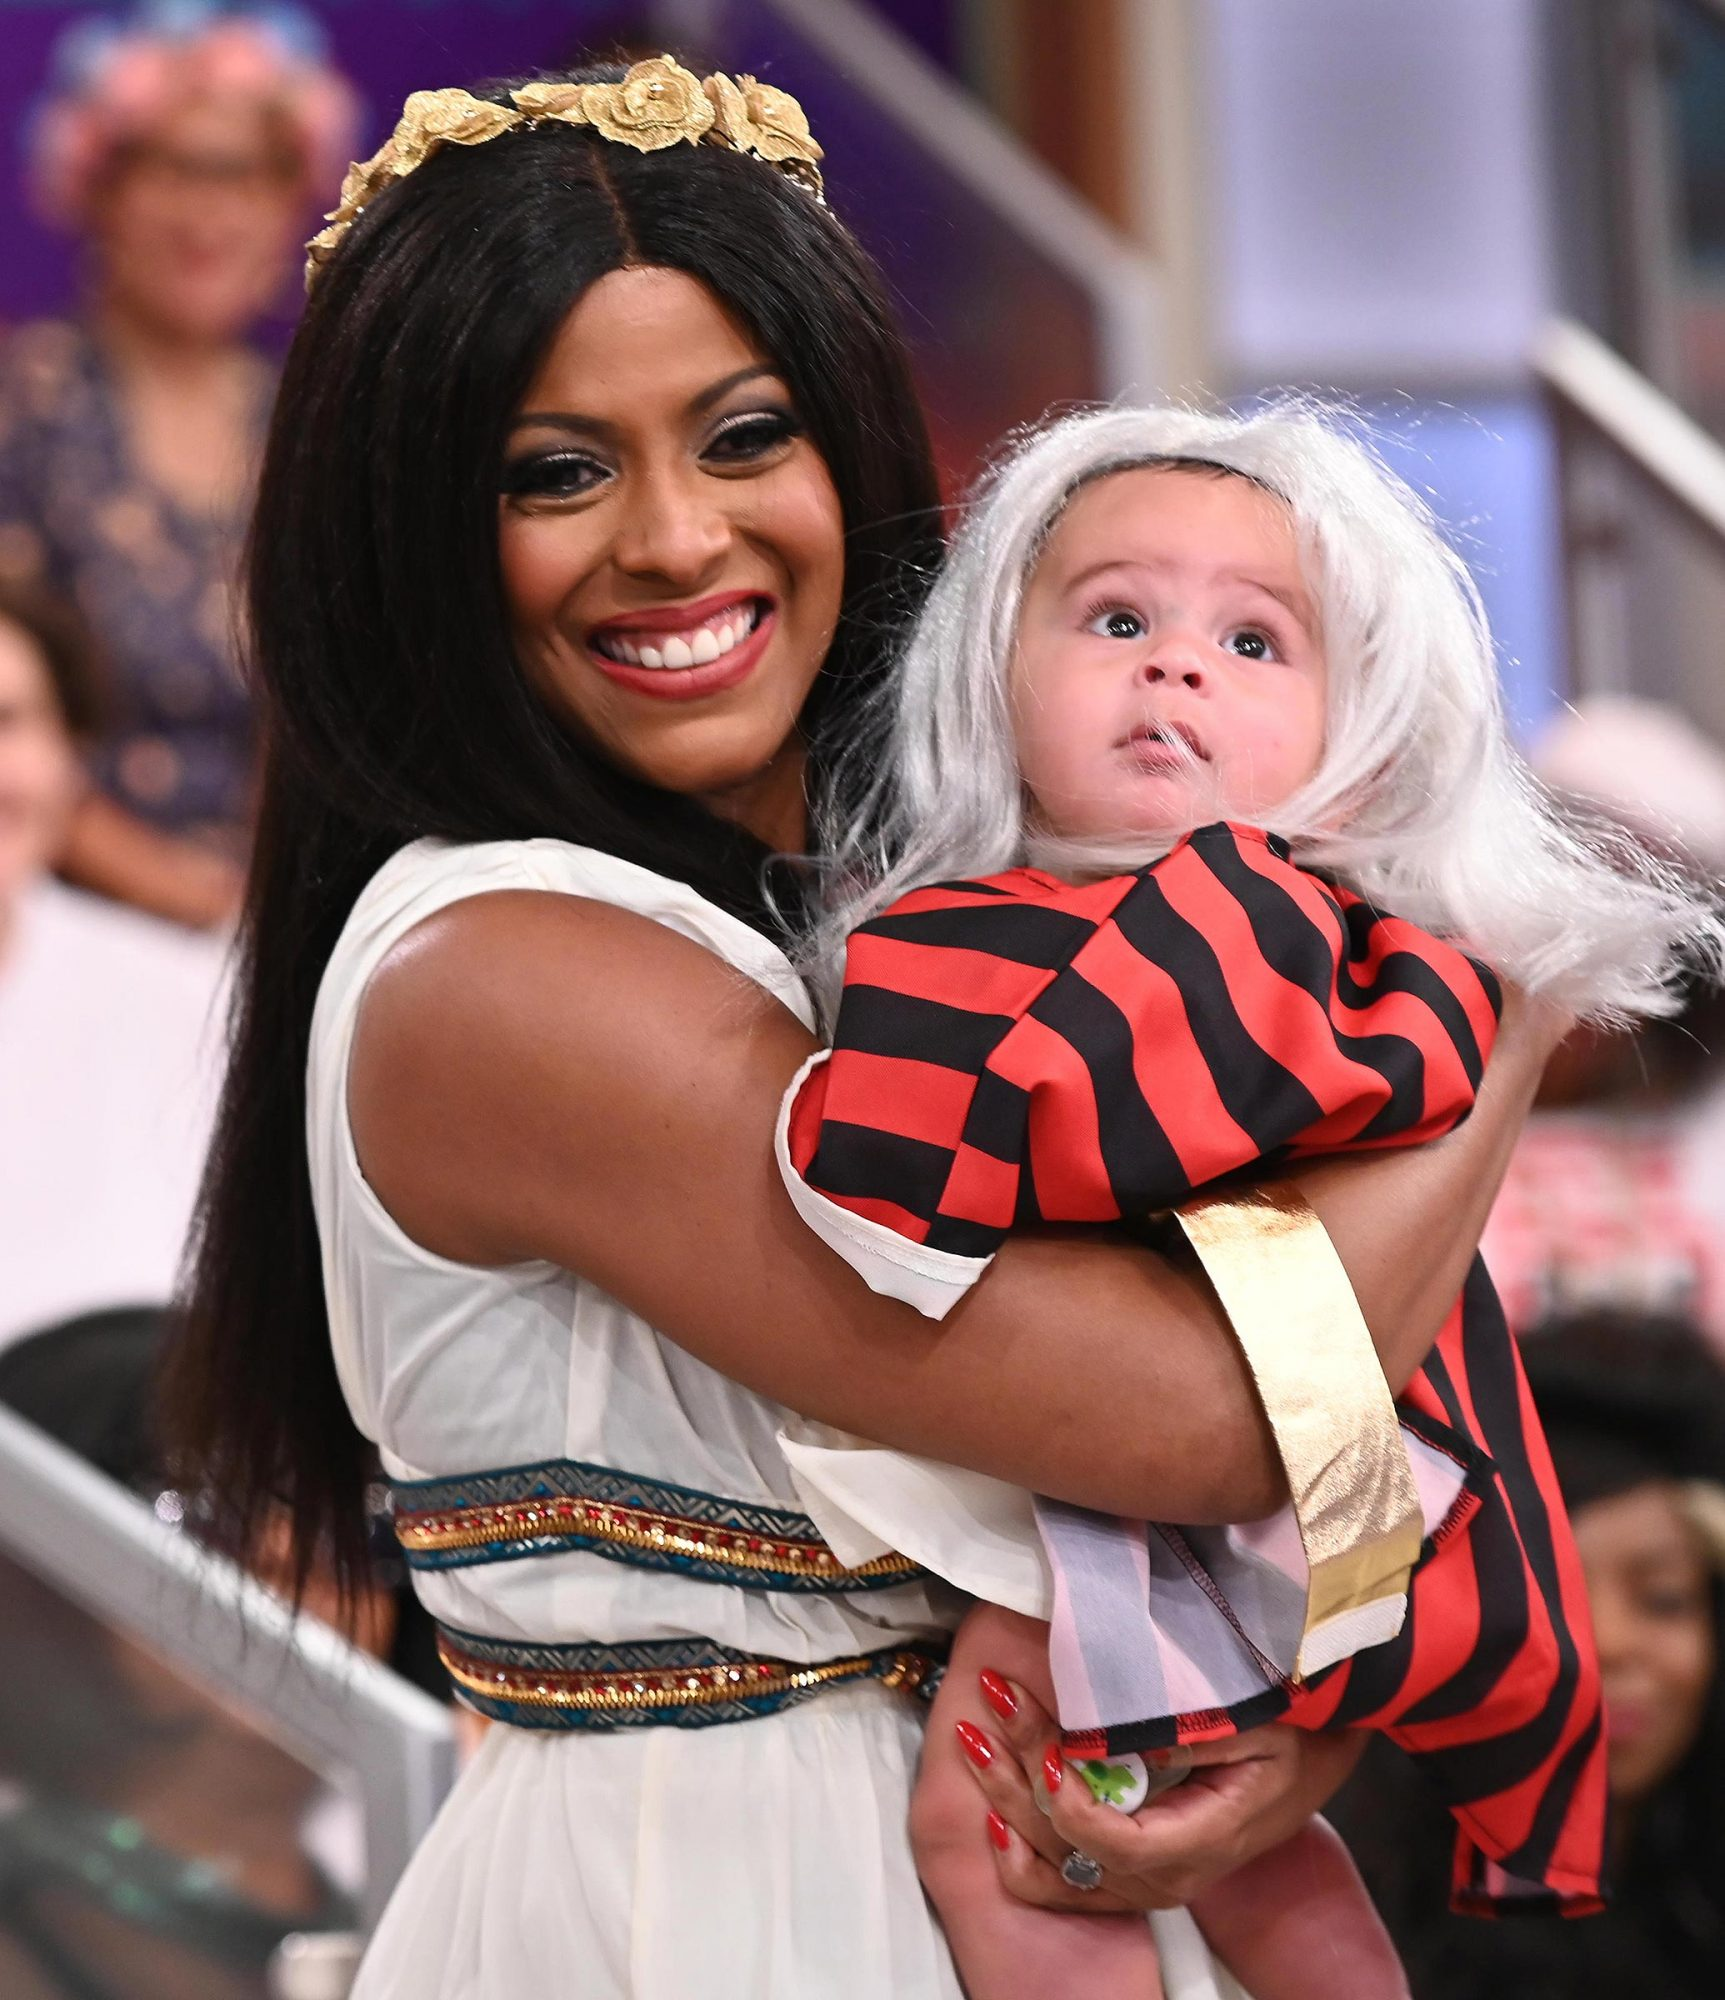 The host of Tamron Hall kicked off her first-ever HALL-o-ween show by making her grand entrace as Dynasty's Dominique Deveraux. Hall also brought out her son Moses, who celebrated his first Halloween dressed as his namesake.